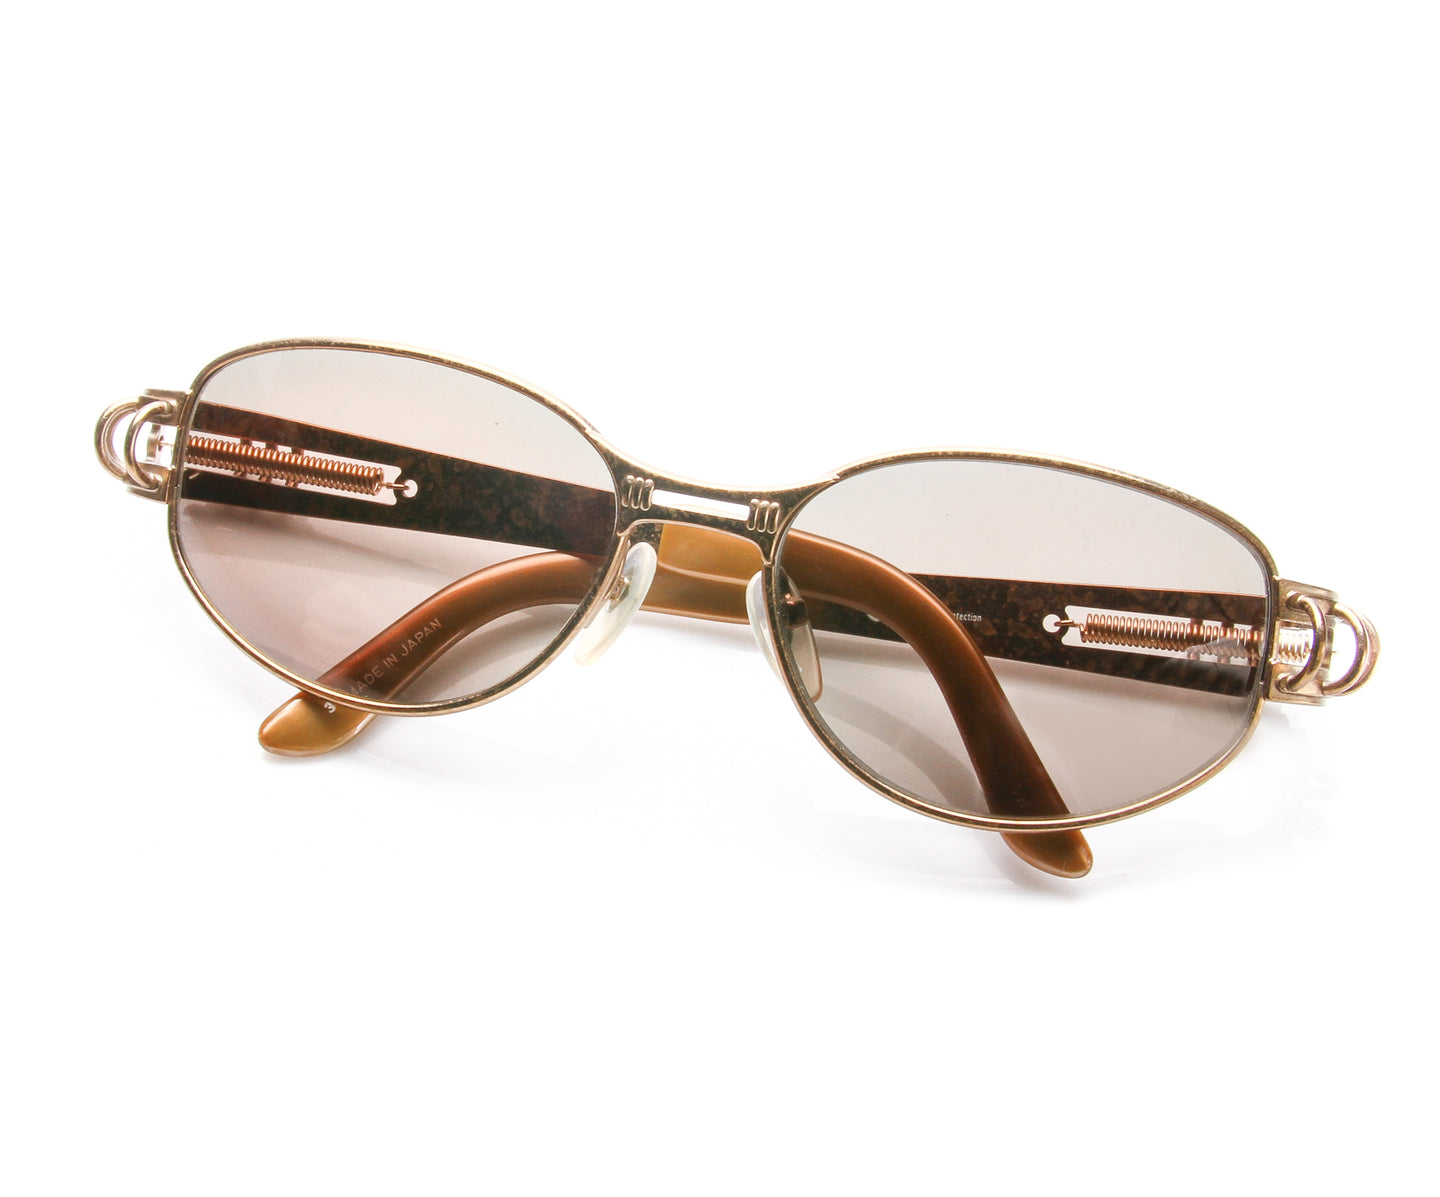 Jean Paul Gaultier 56 6103 3, Jean Paul Gaultier , glasses frames, eyeglasses online, eyeglass frames, mens glasses, womens glasses, buy glasses online, designer eyeglasses, vintage sunglasses, retro sunglasses, vintage glasses, sunglass, eyeglass, glasses, lens, vintage frames company, vf